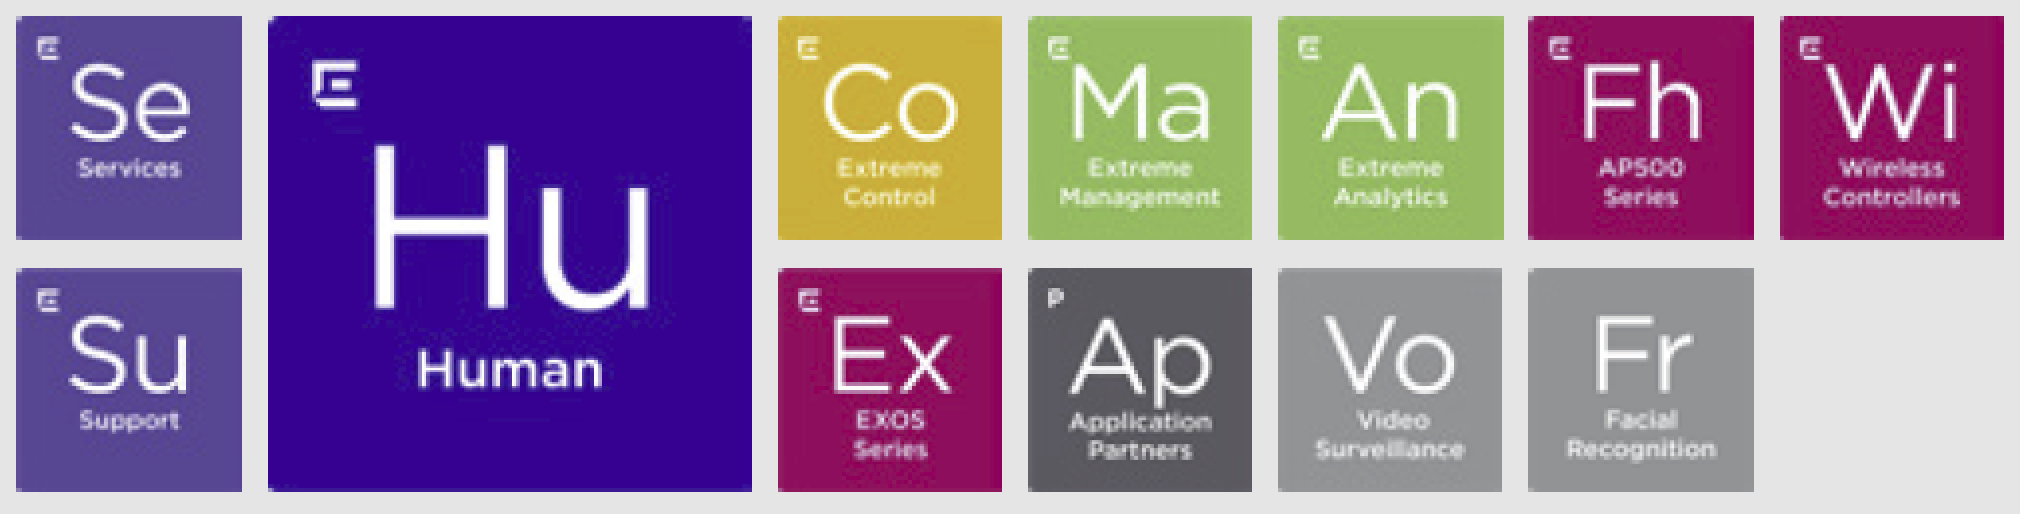 Extreme Elements for K-12